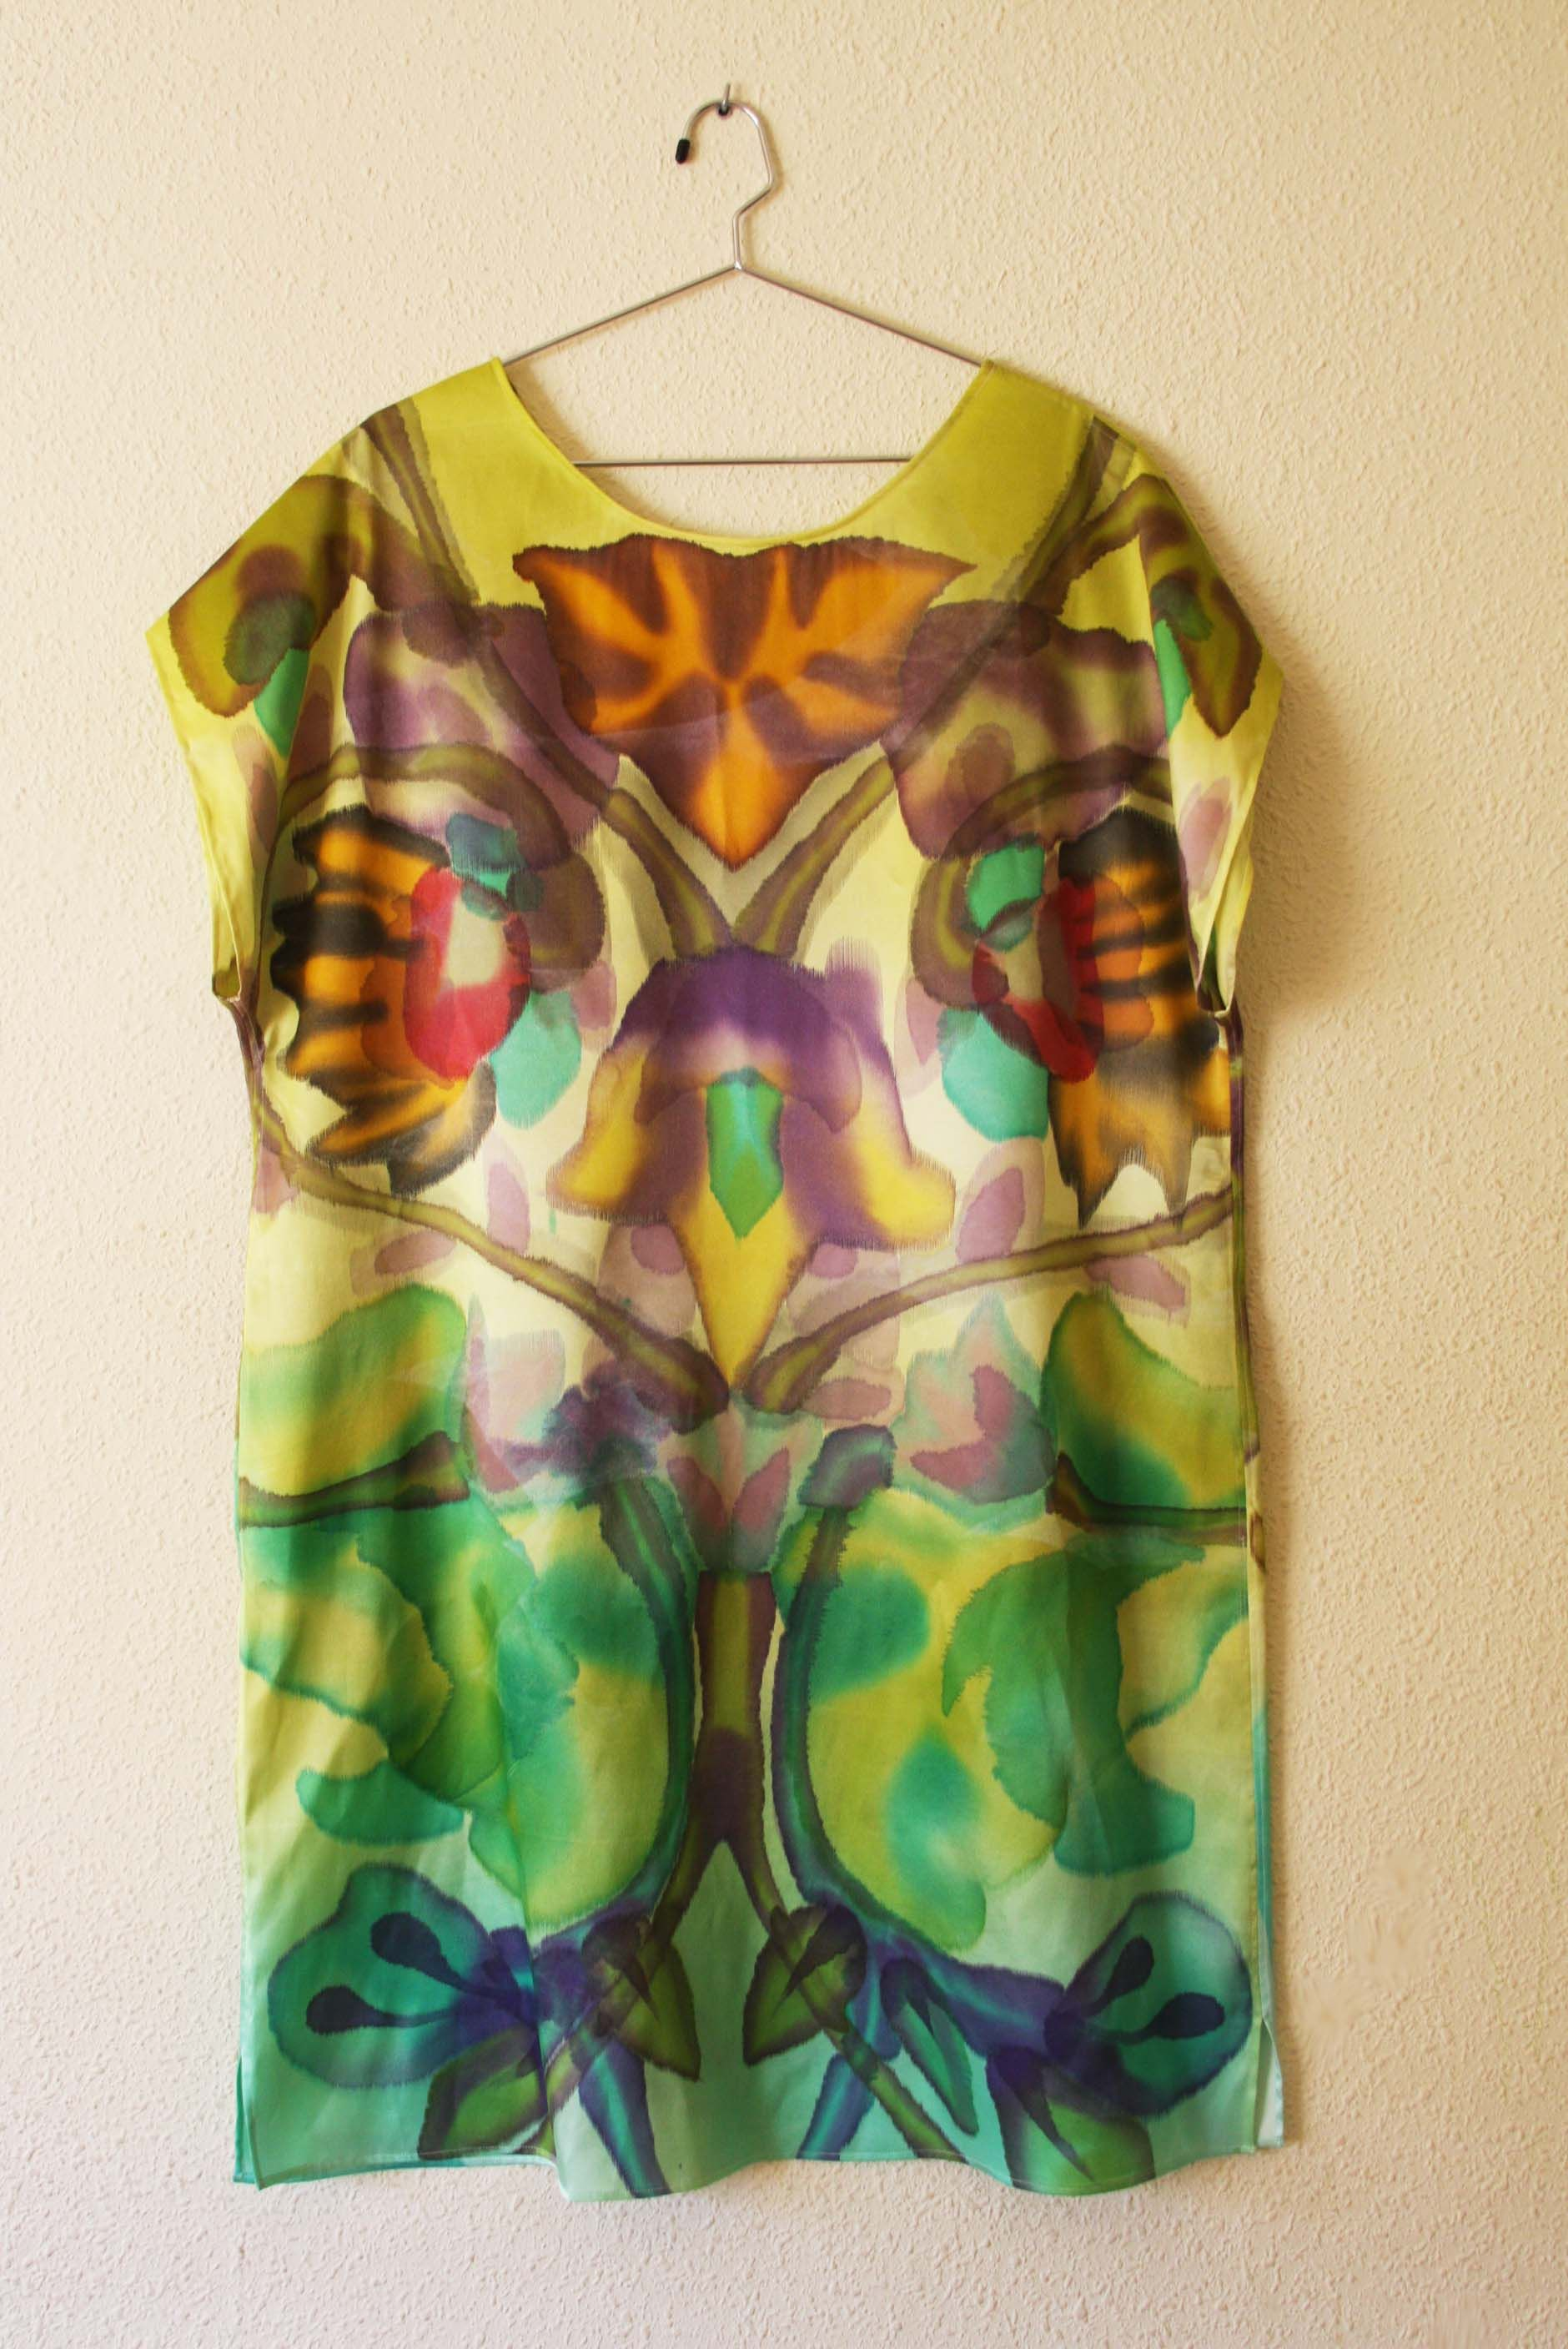 Hand-painted tunic by Asta Masiulyte http://www.astasilk.com/product/clematis-hand-painted-dress